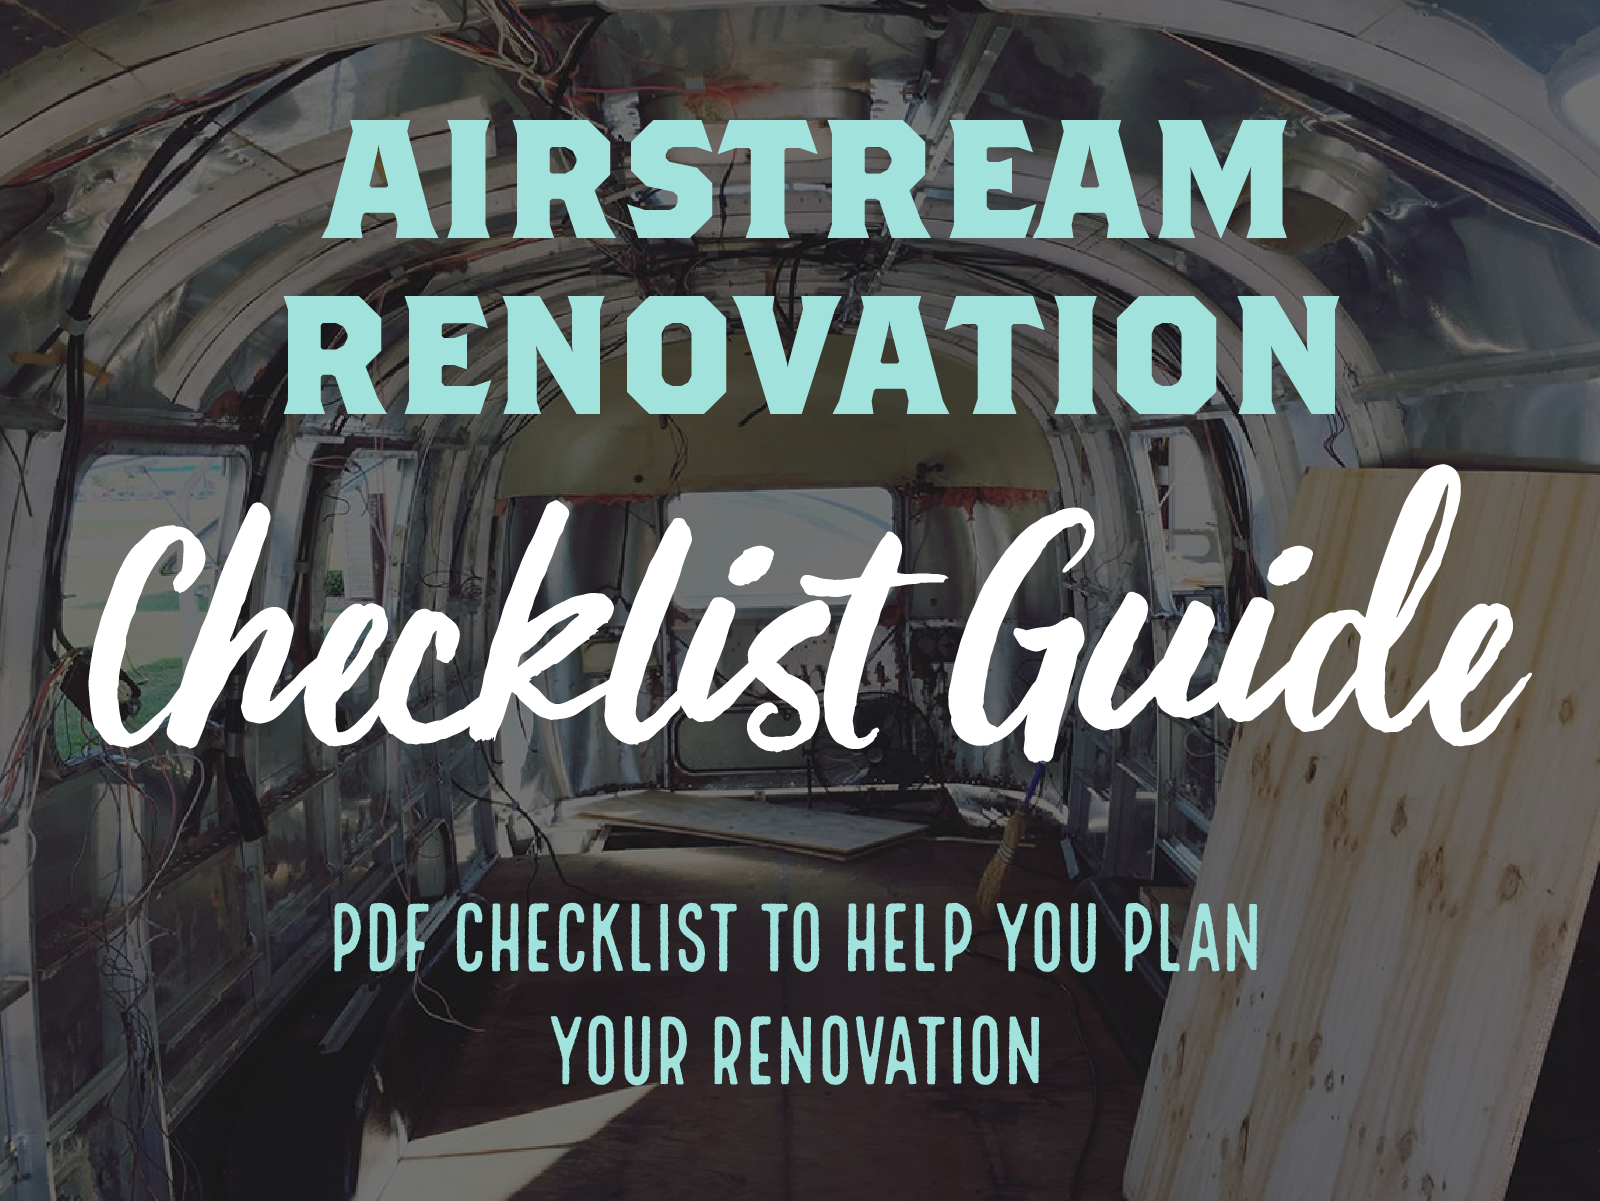 Airstream Renovation Checklist Guide - PDF Checklist to help you plan your renovation.